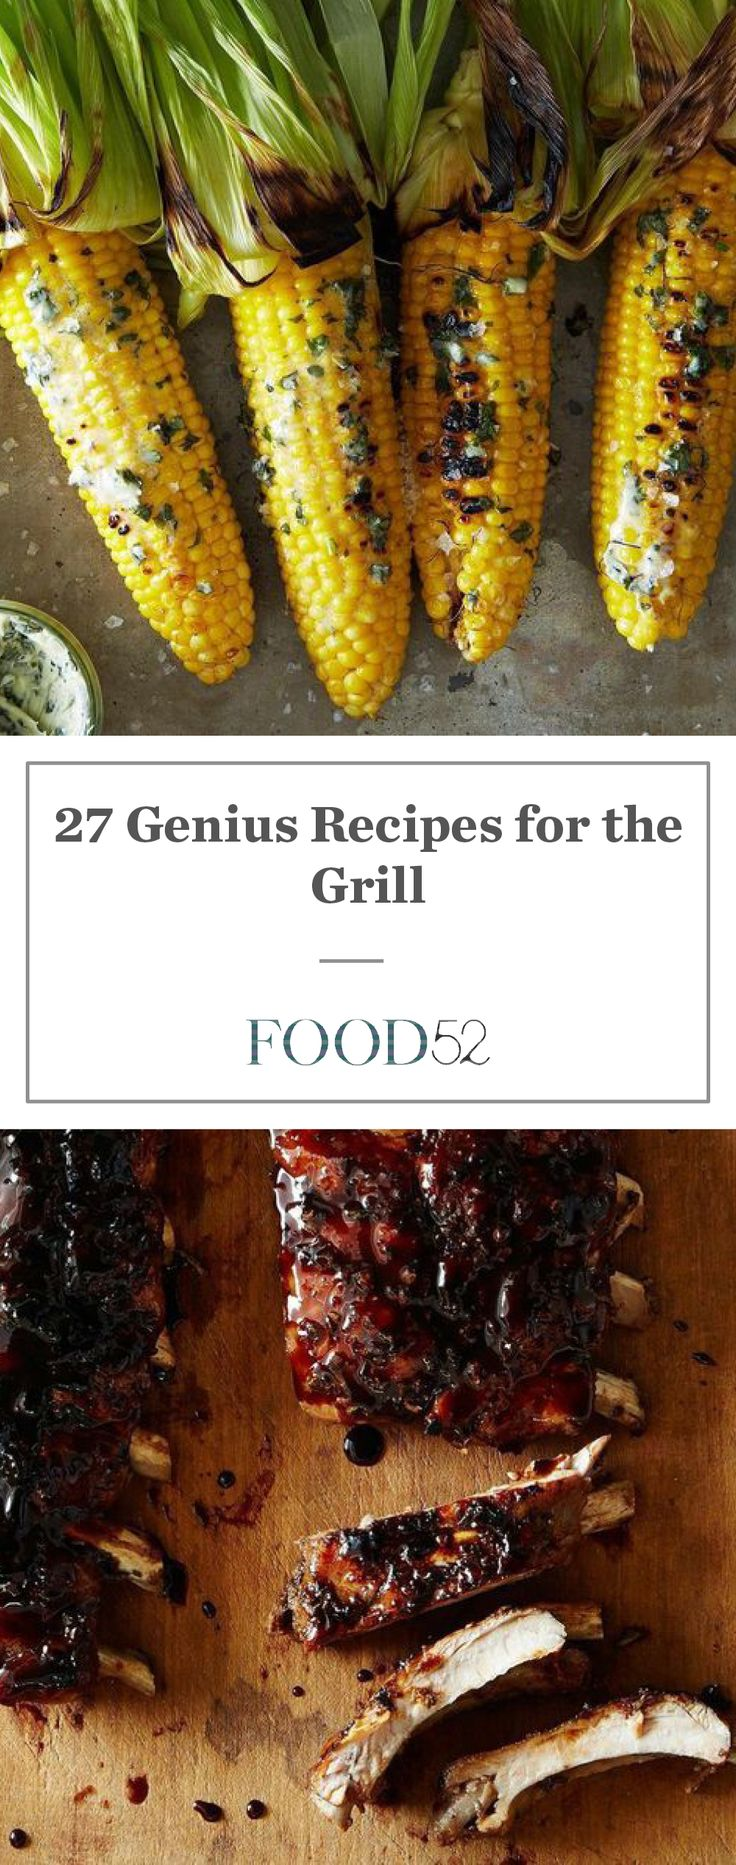 27 Genius Recipes for the Grill